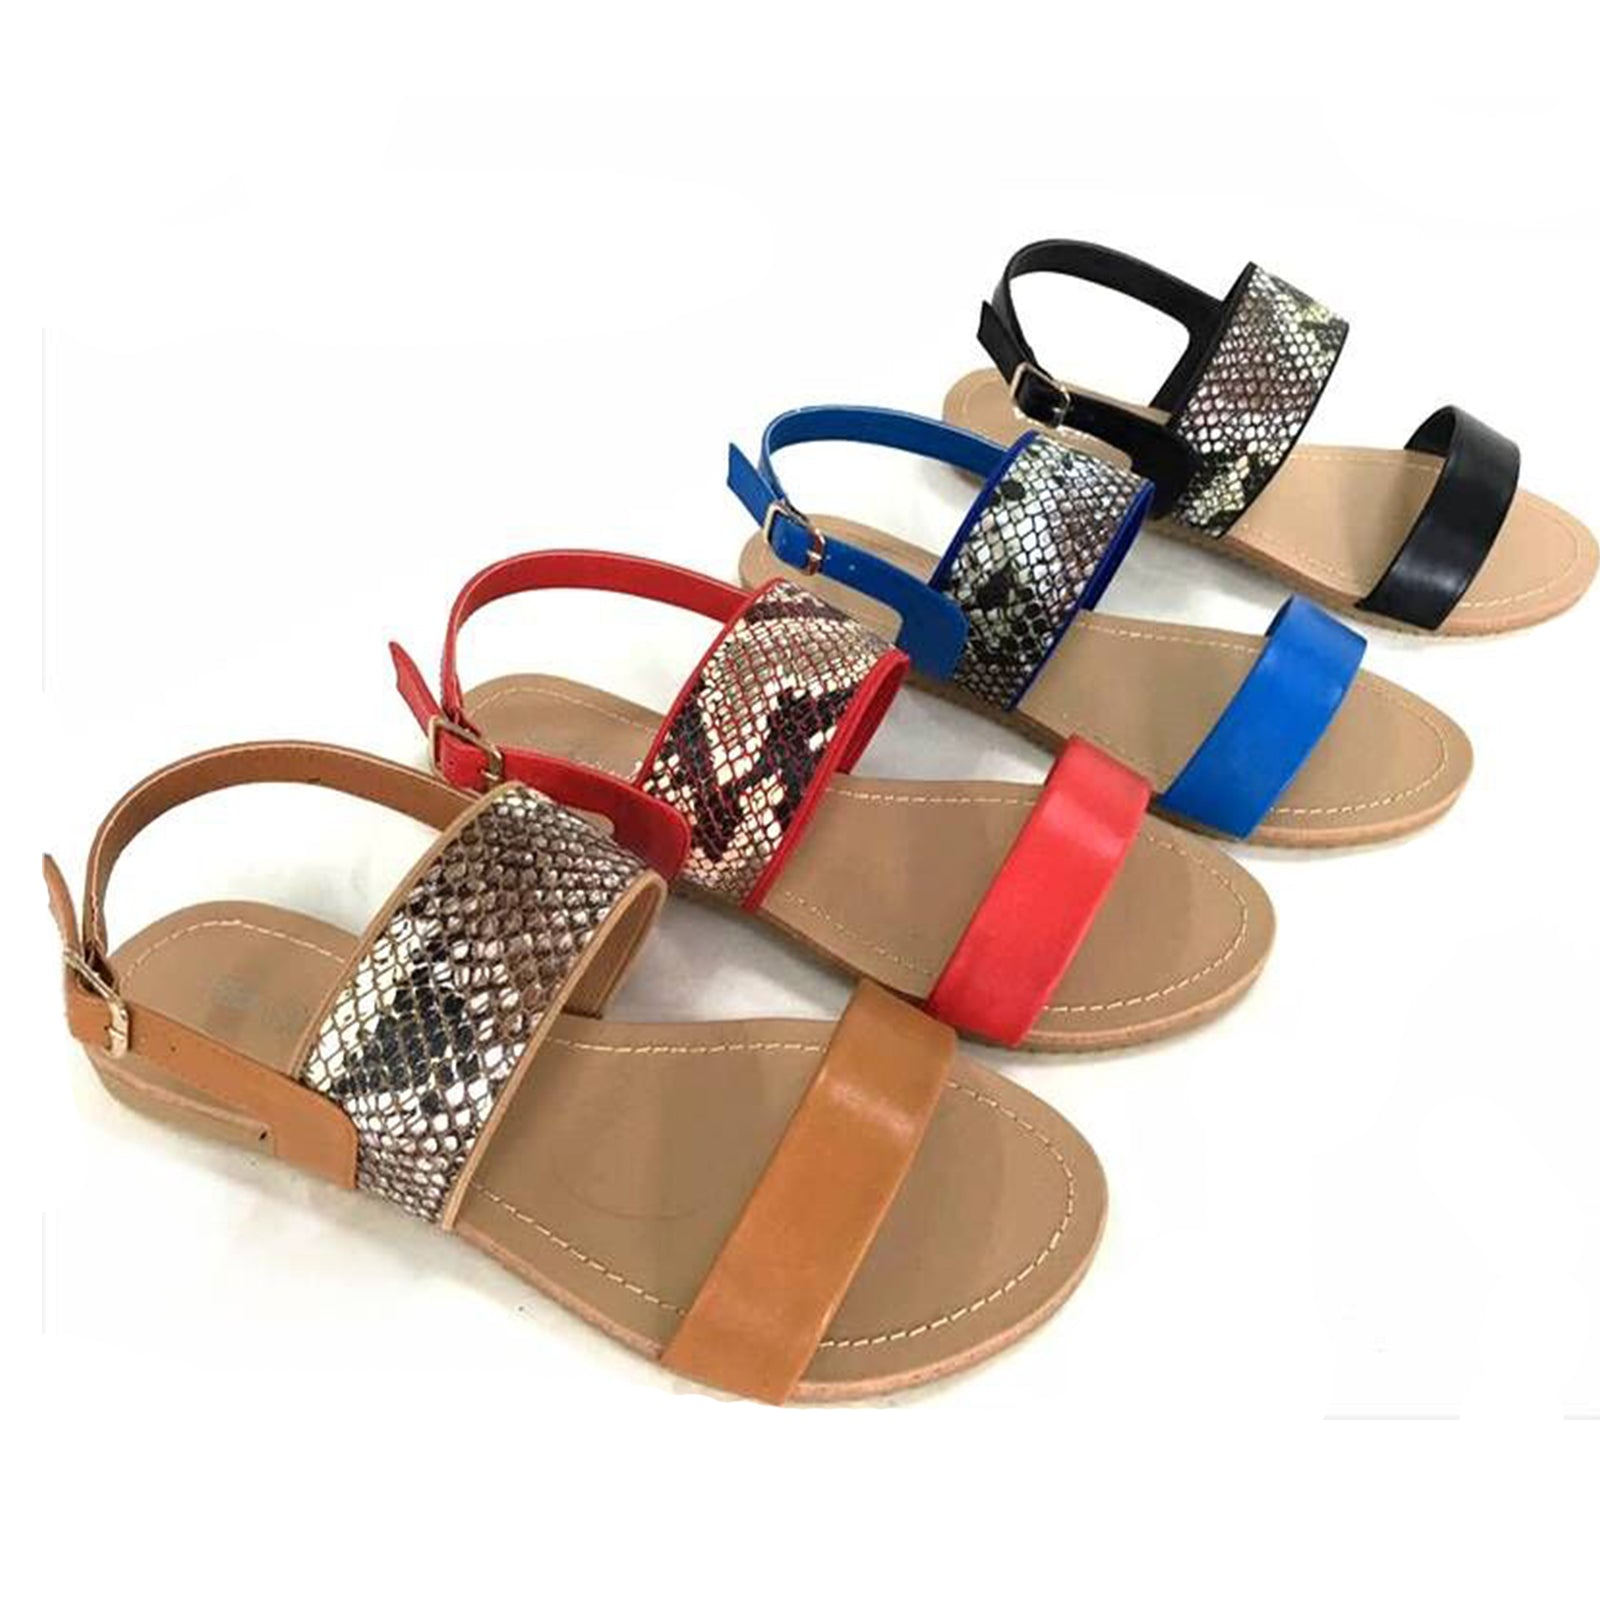 Wholesale Women's shoes double strap snake SANDALS ncpc6